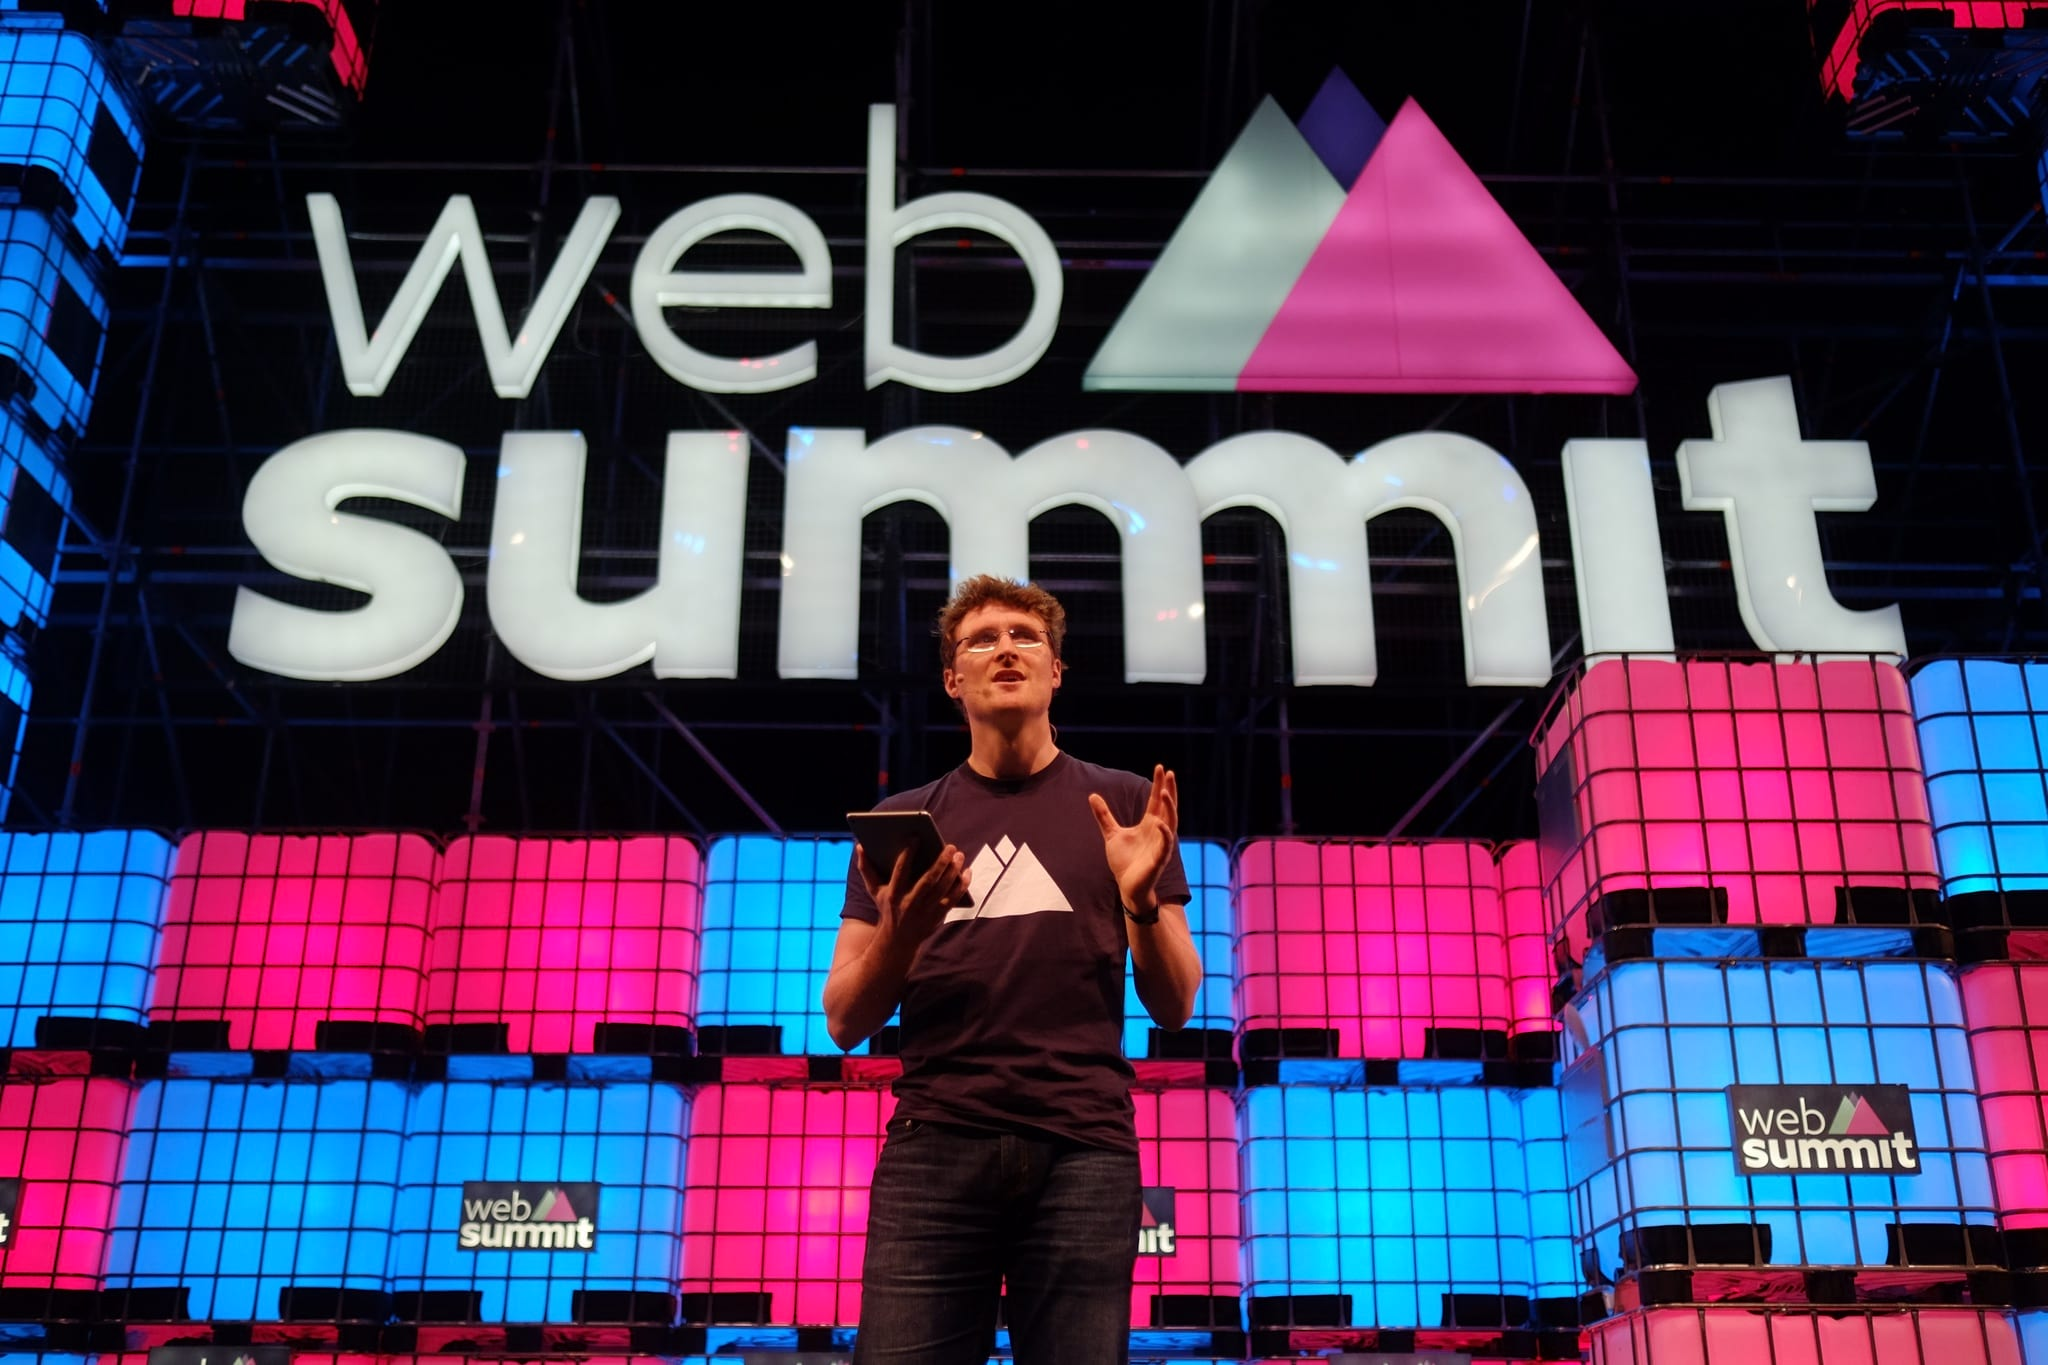 Web Summit 2016 Lisbon